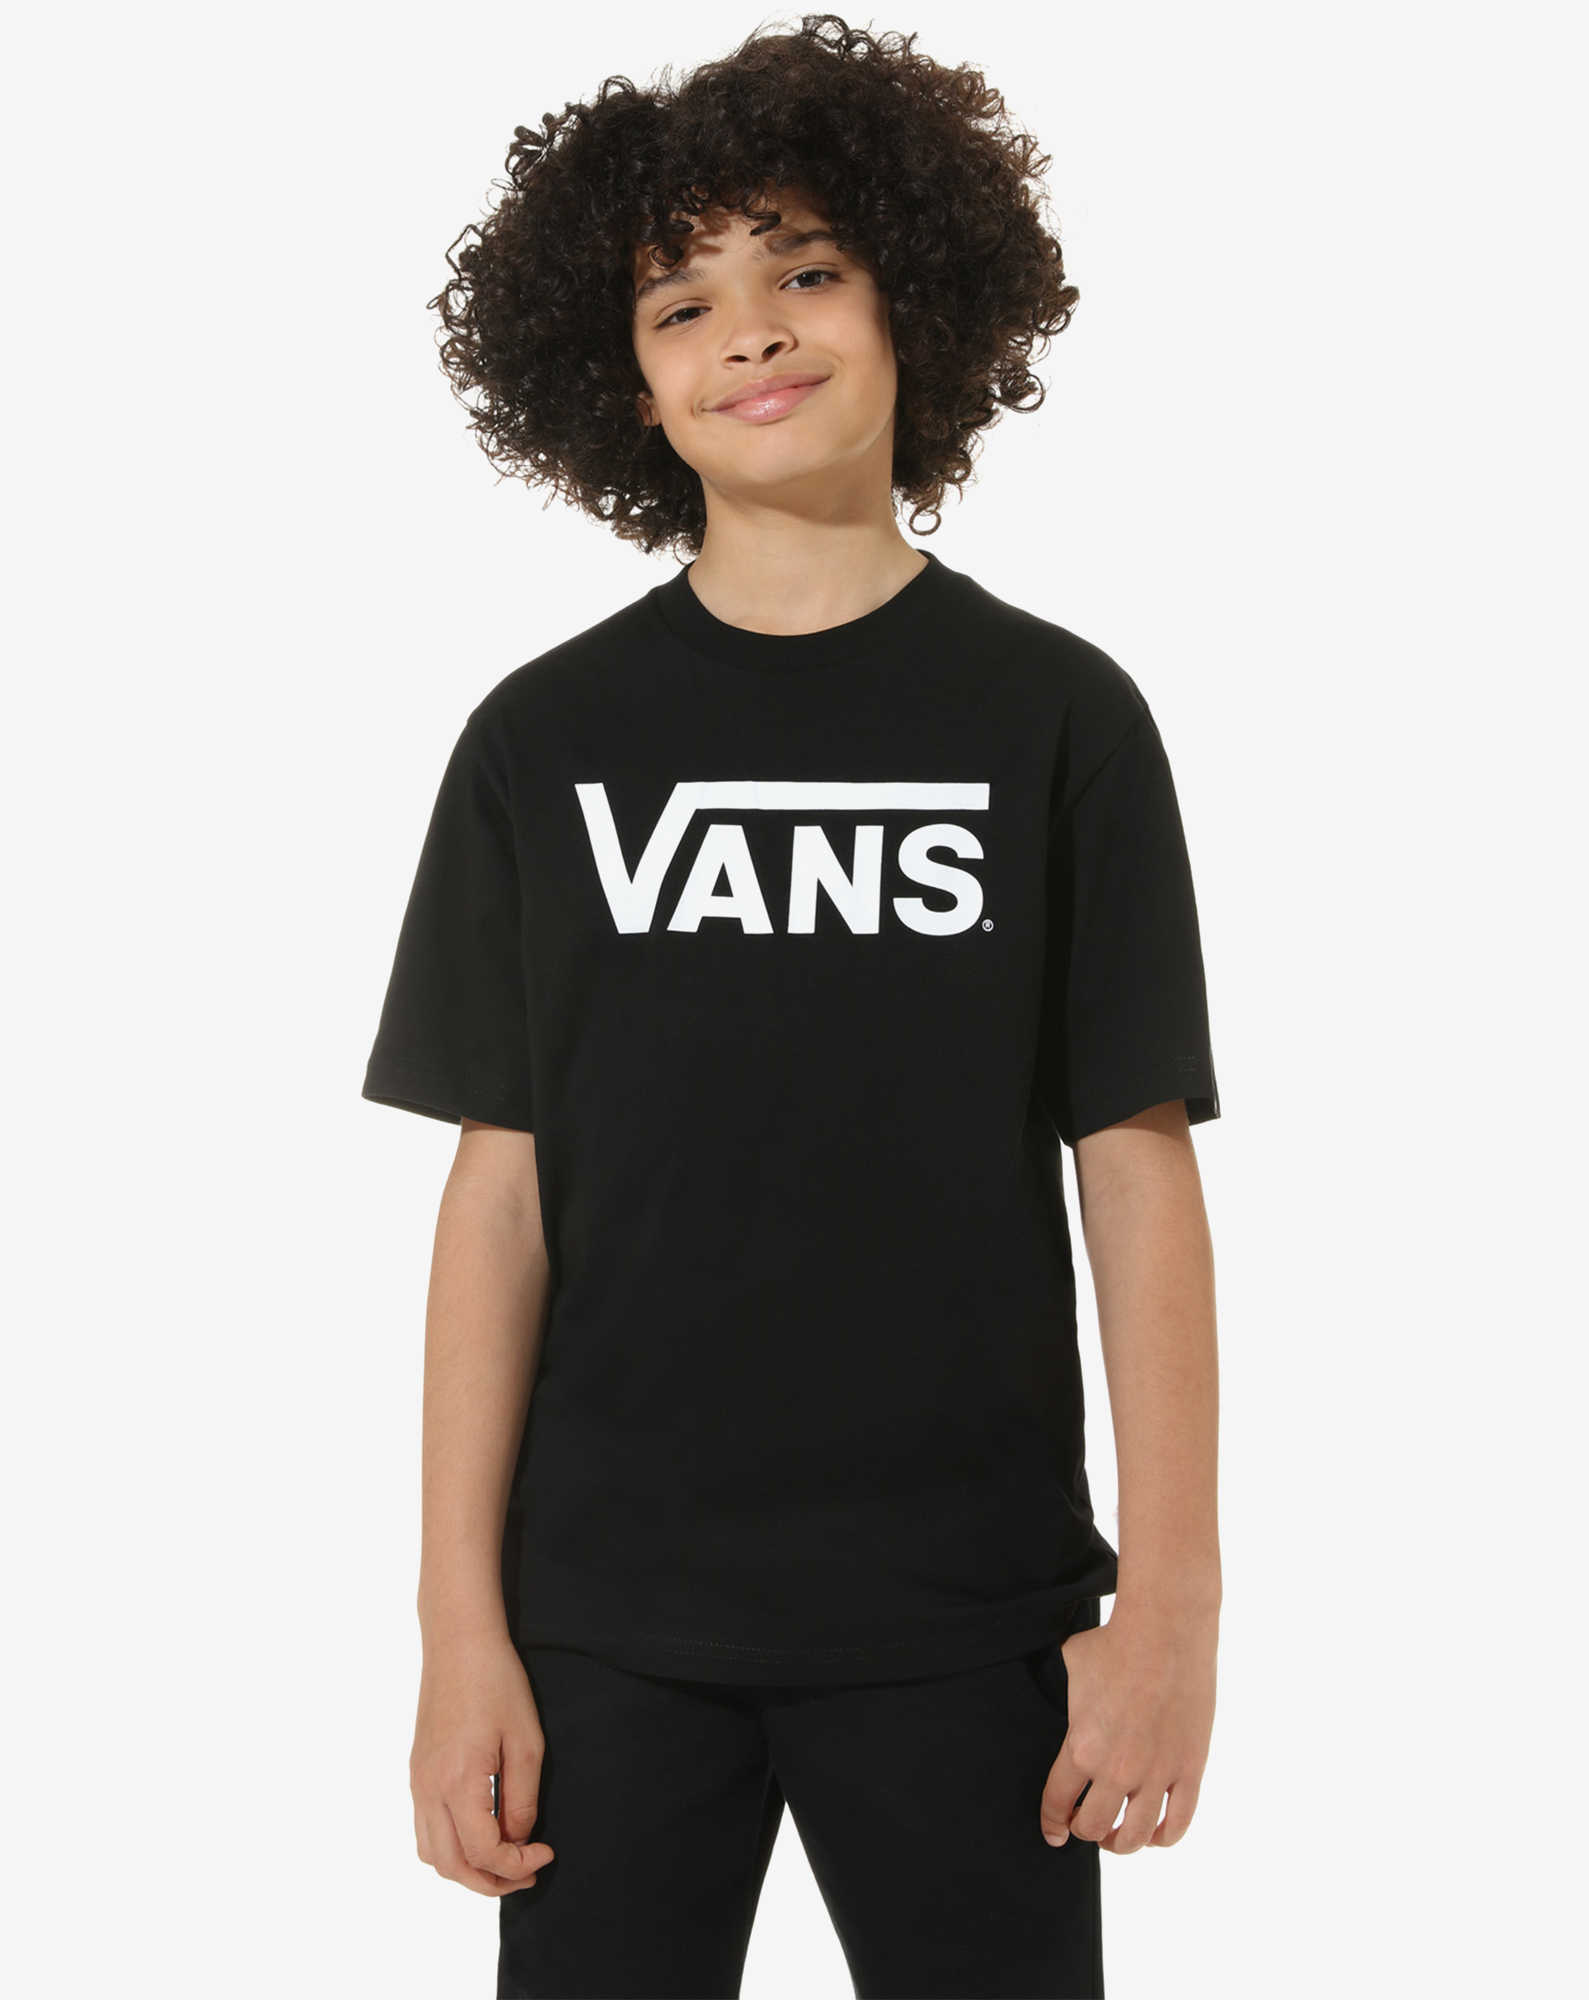 náhled BY VANS CLASSIC BOYS Black/White